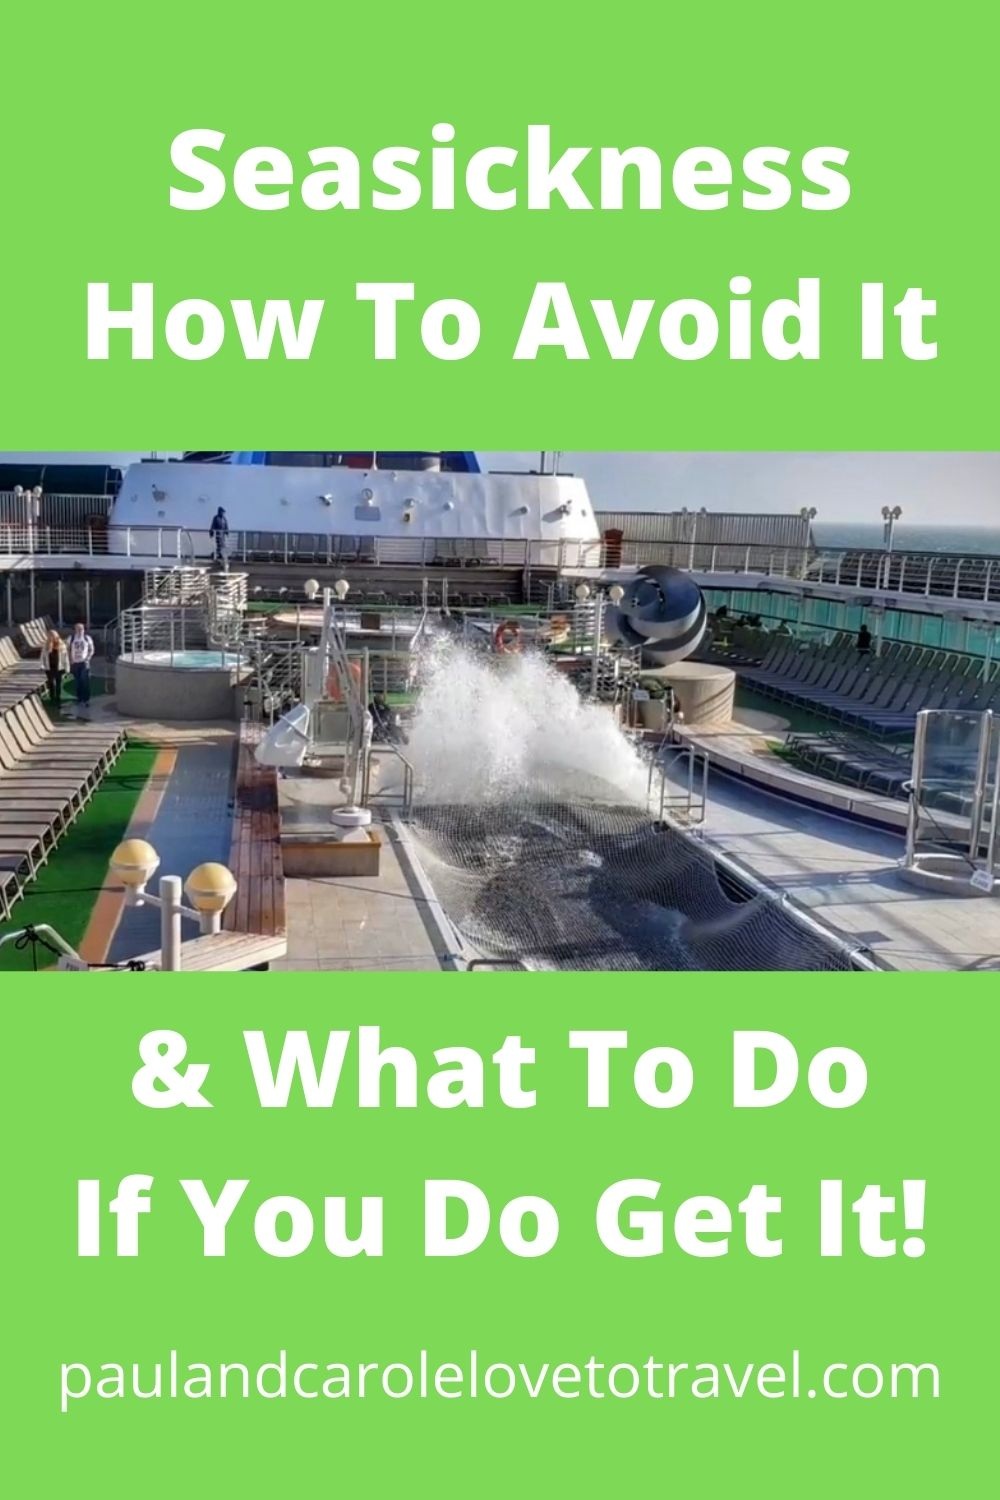 seasickness how to avoid and what to do if you get it Paul and Carole Cruise Cruising